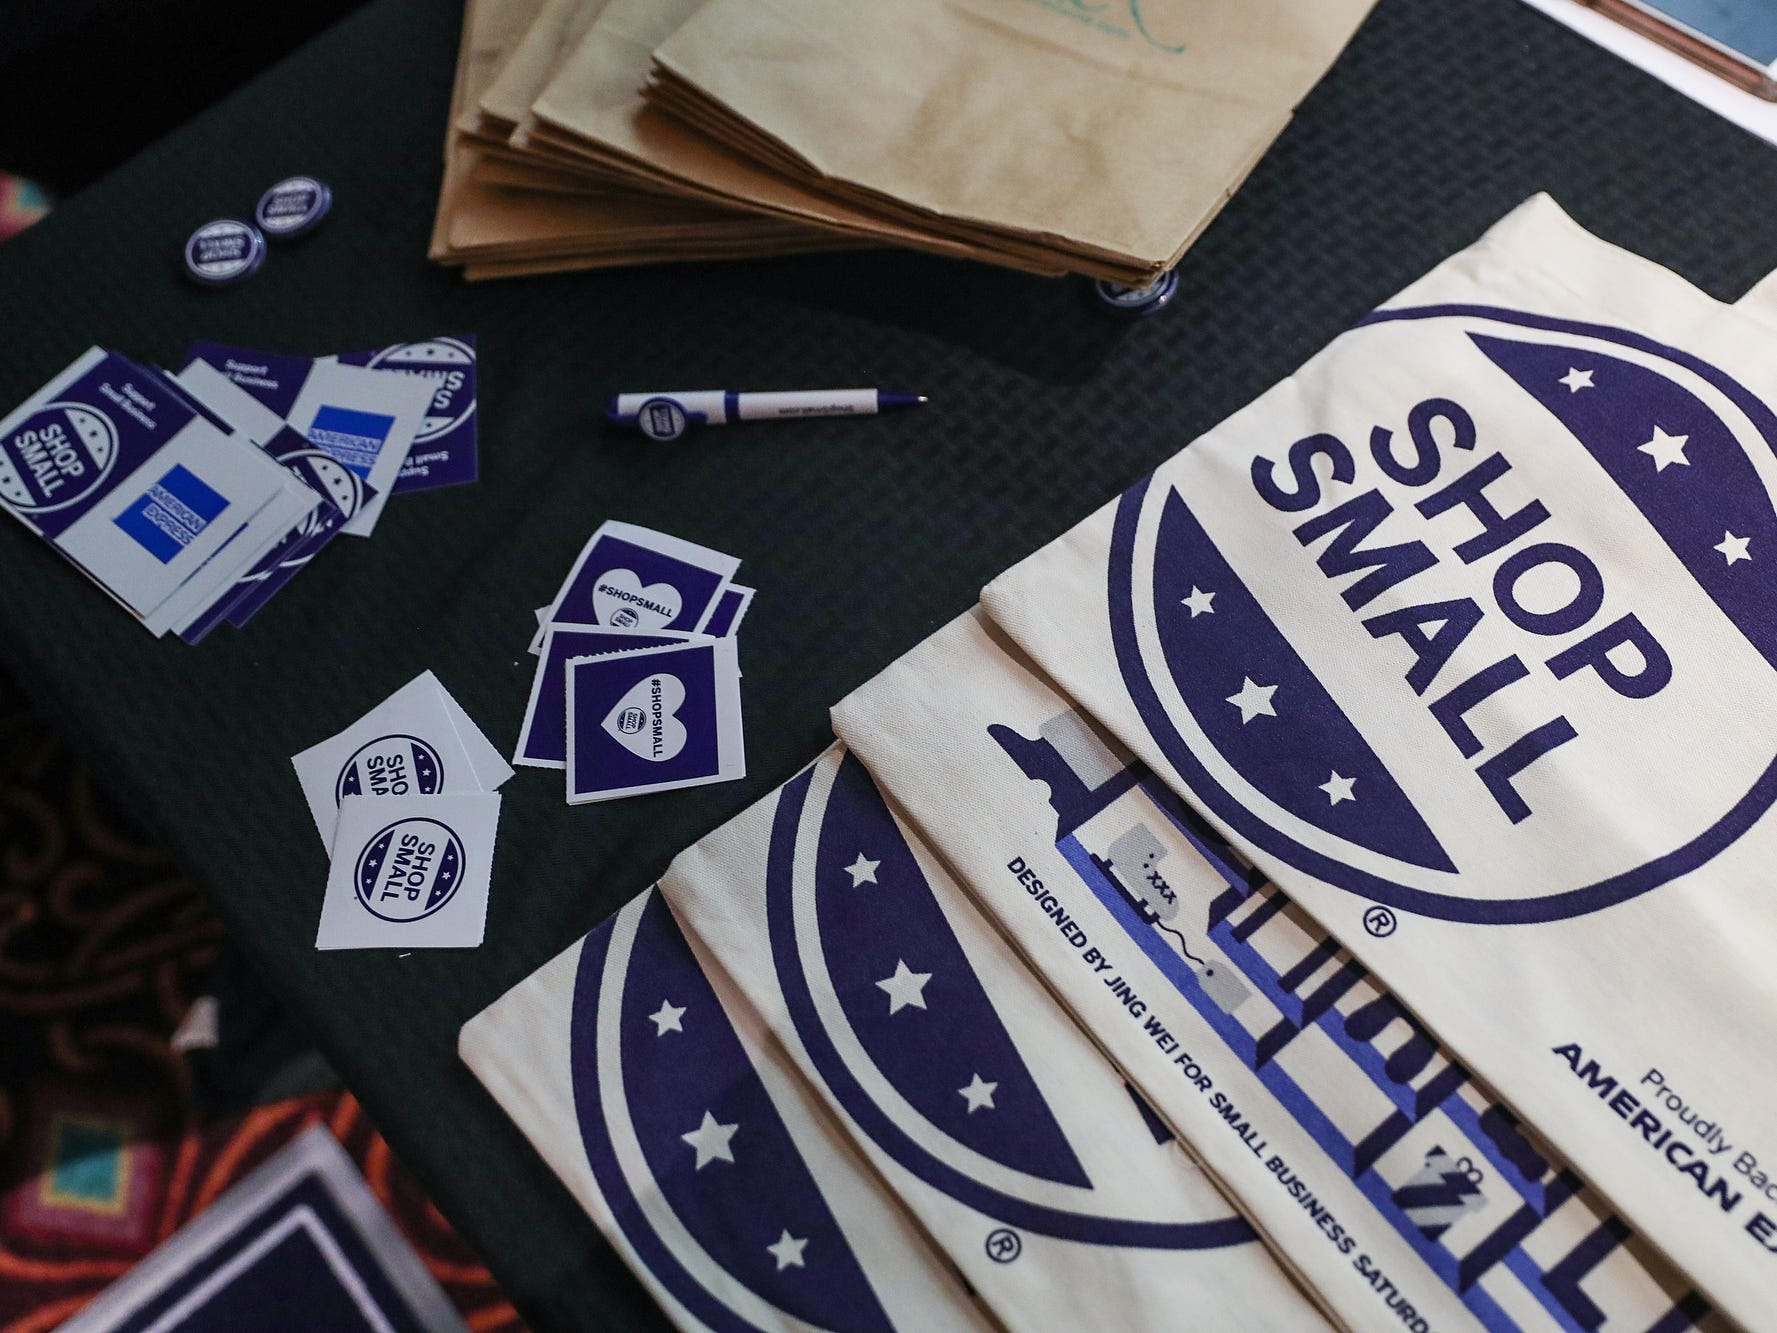 Bags and stickers are given away at a market showcasing more than 65 women and minority-owned small businesses at the Murat Shrine Temple in Indianapolis, Saturday, Nov. 24, 2018. The fifth annual event is part of Small Business Saturday, launched nationally by American Express eight years ago to help independently owned businesses bounce back from the recession.